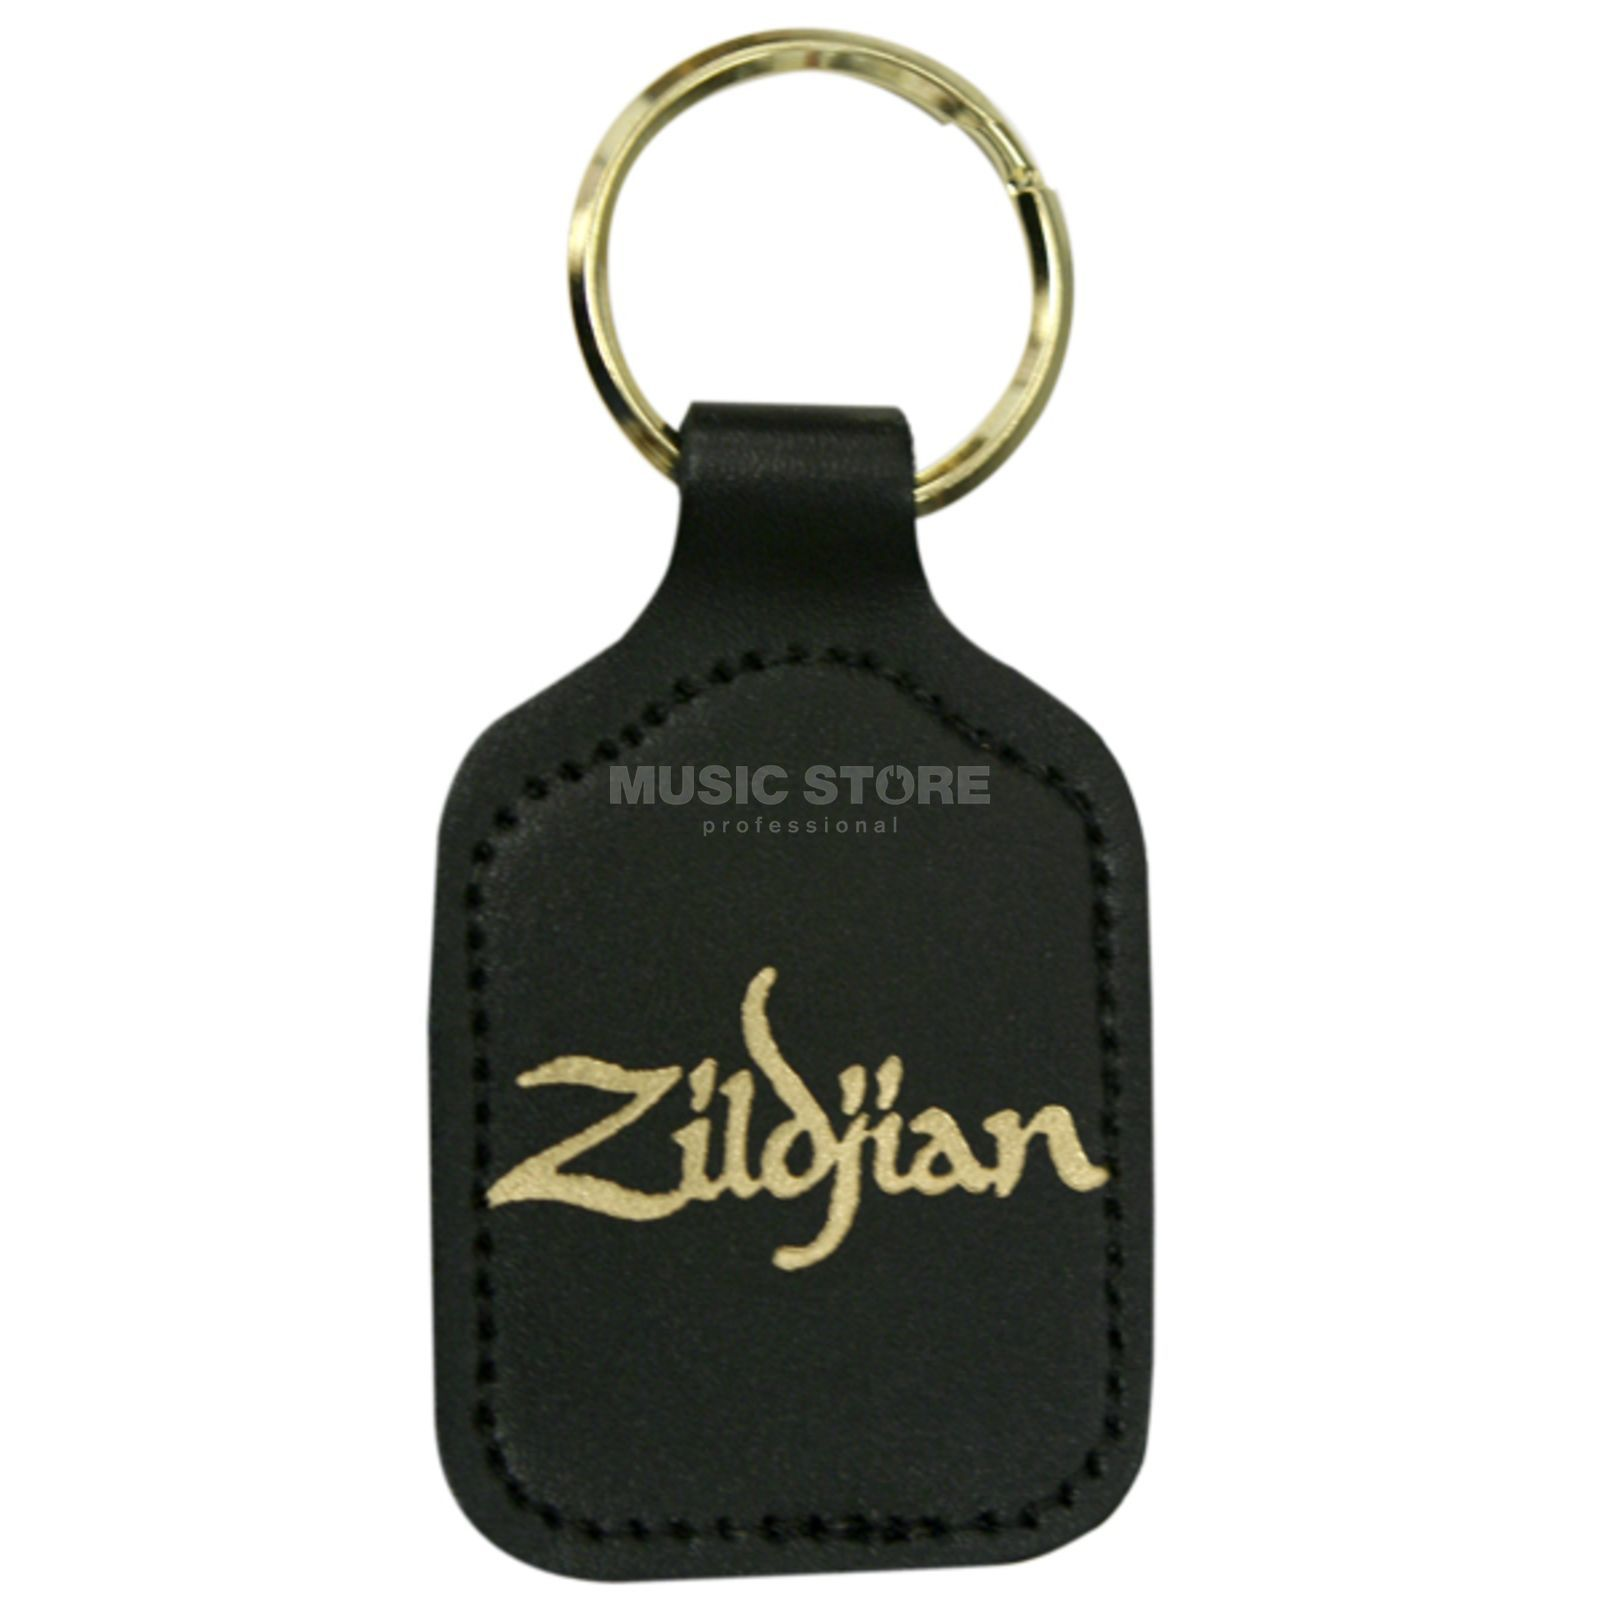 Zildjian Leather Key Ring  Immagine prodotto